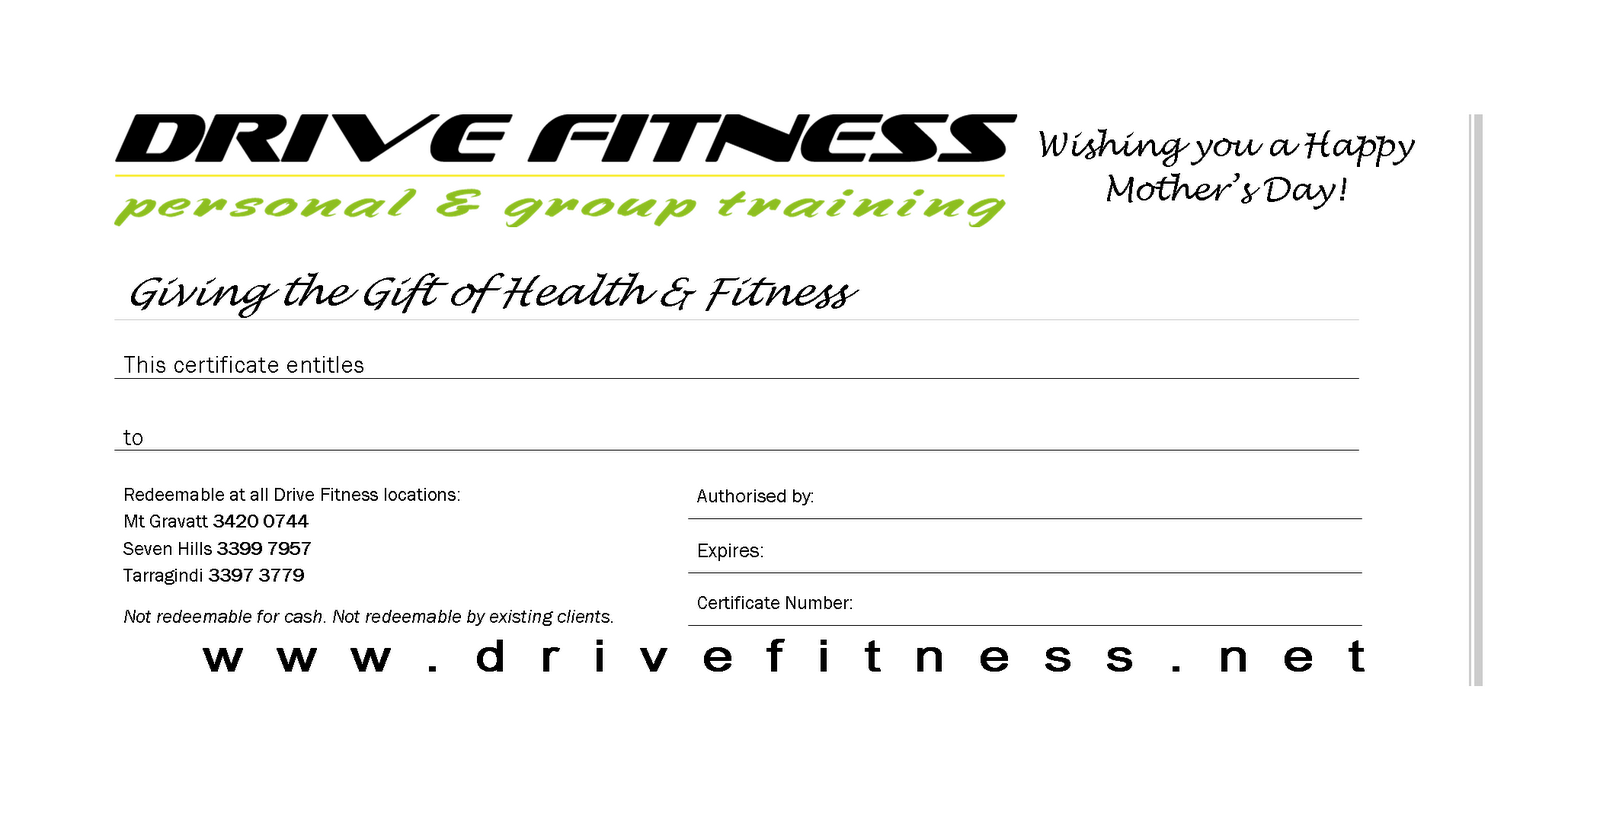 Drive fitness blog mother 39 s day gift certificates for Personal trainer gift certificate template